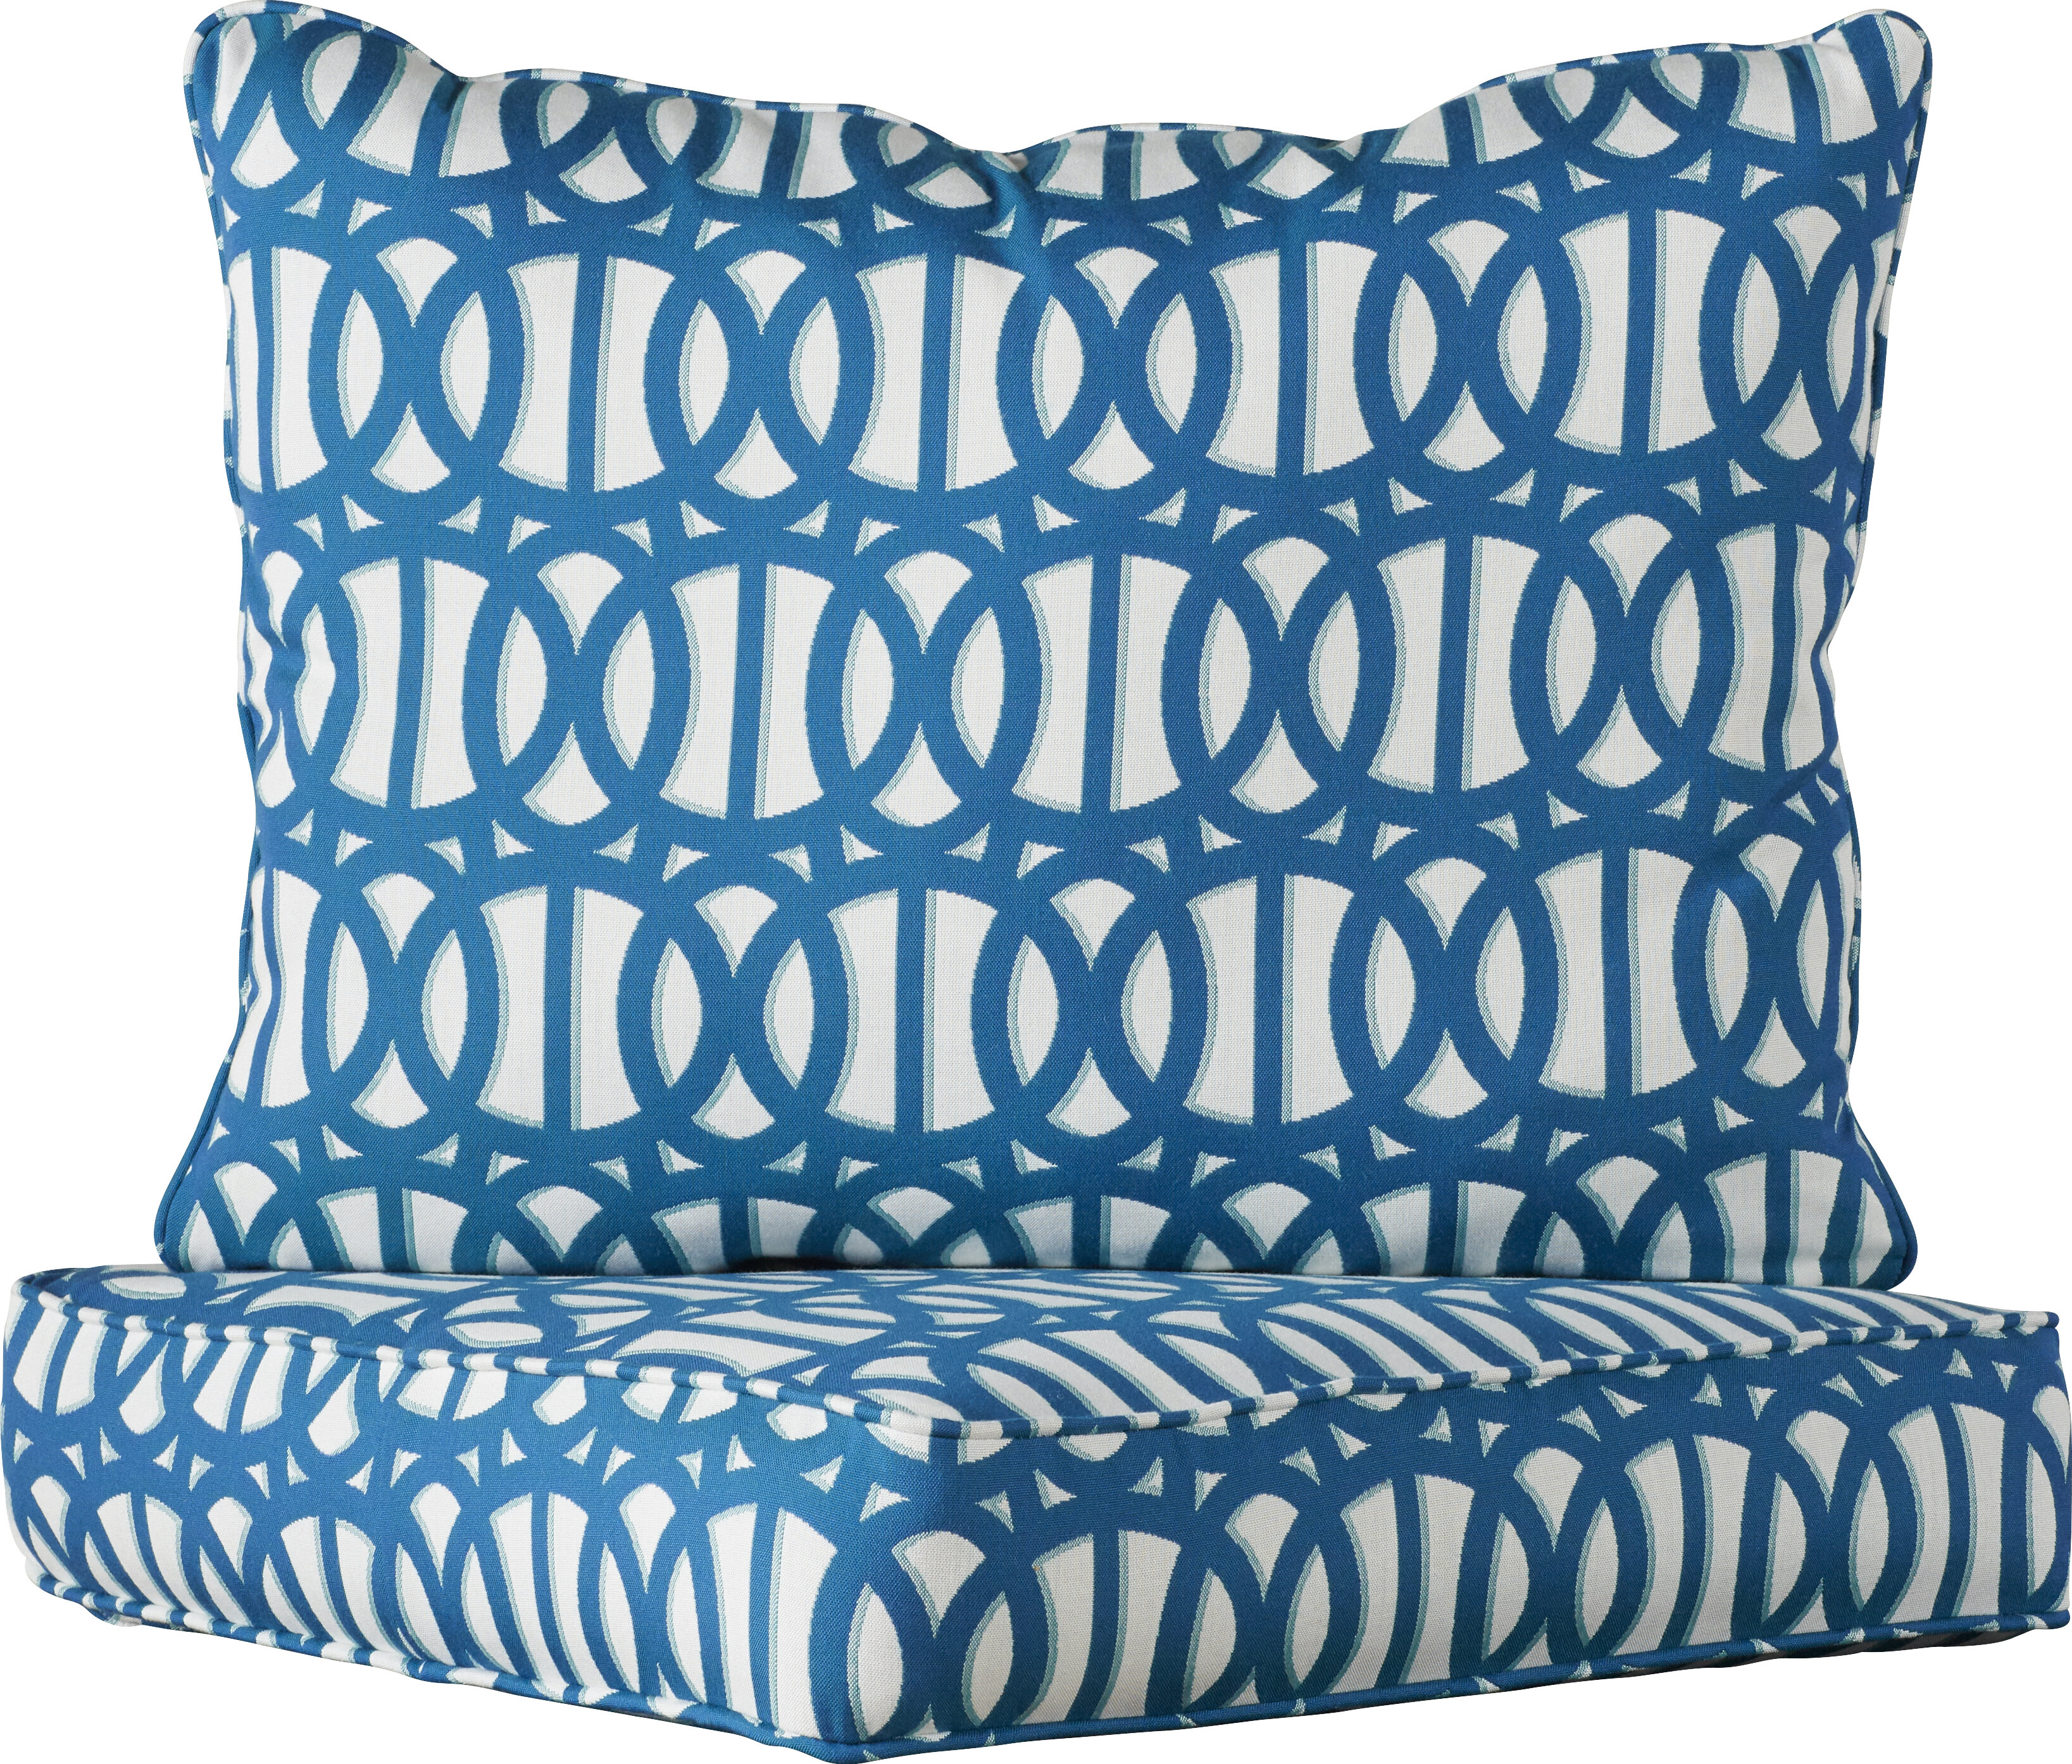 stripe outdoor blue product designer sunbrella custom pillows pillow